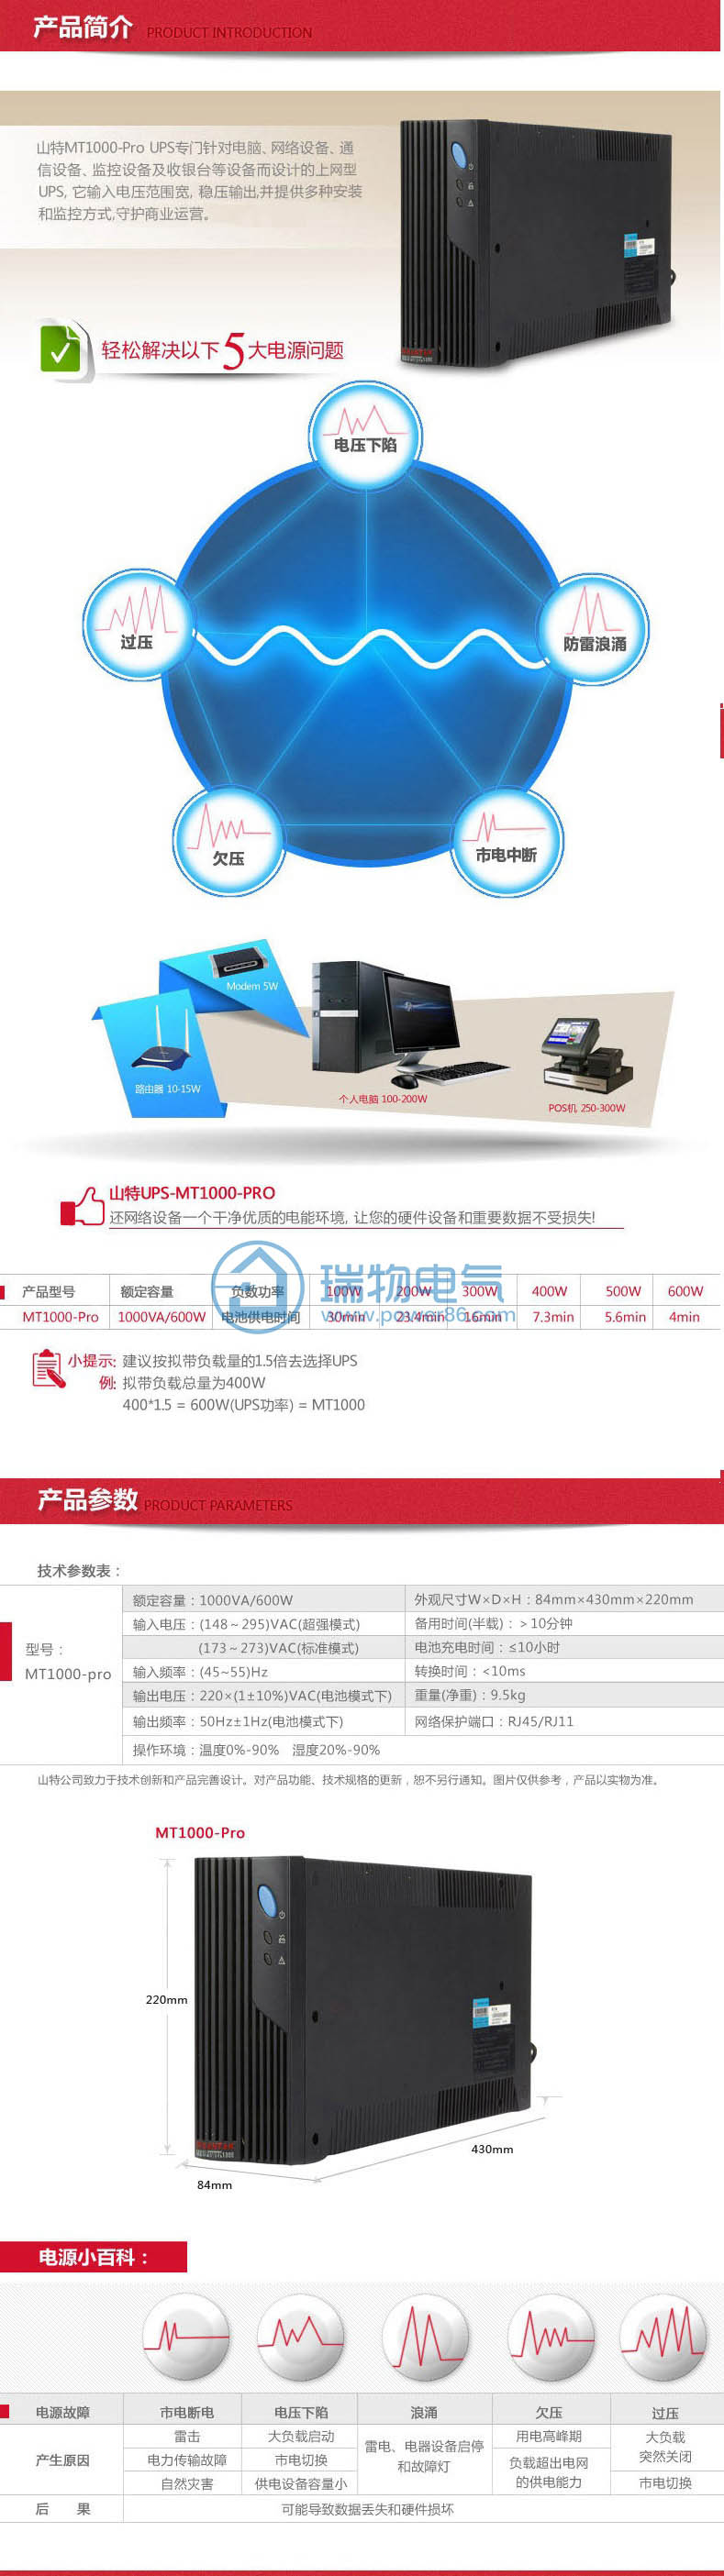 产品介绍http://www.power86.com/rs1/ups/10/125/144/144_c0.jpg